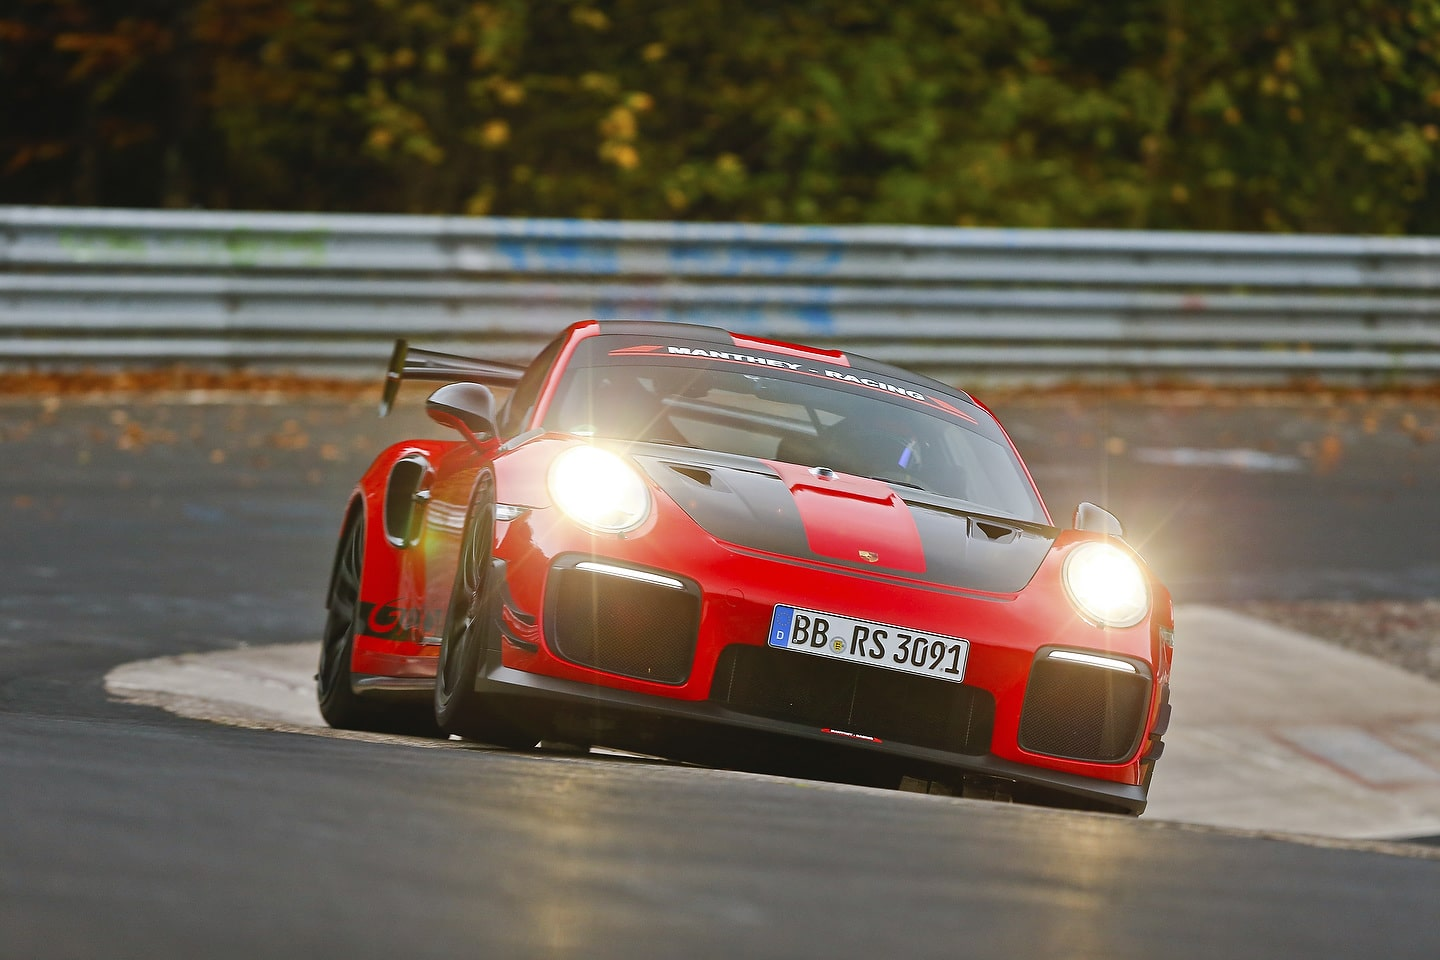 Porsche 911 GT2 RS MR sets a new record on the NŸrburgring-Nordschleife